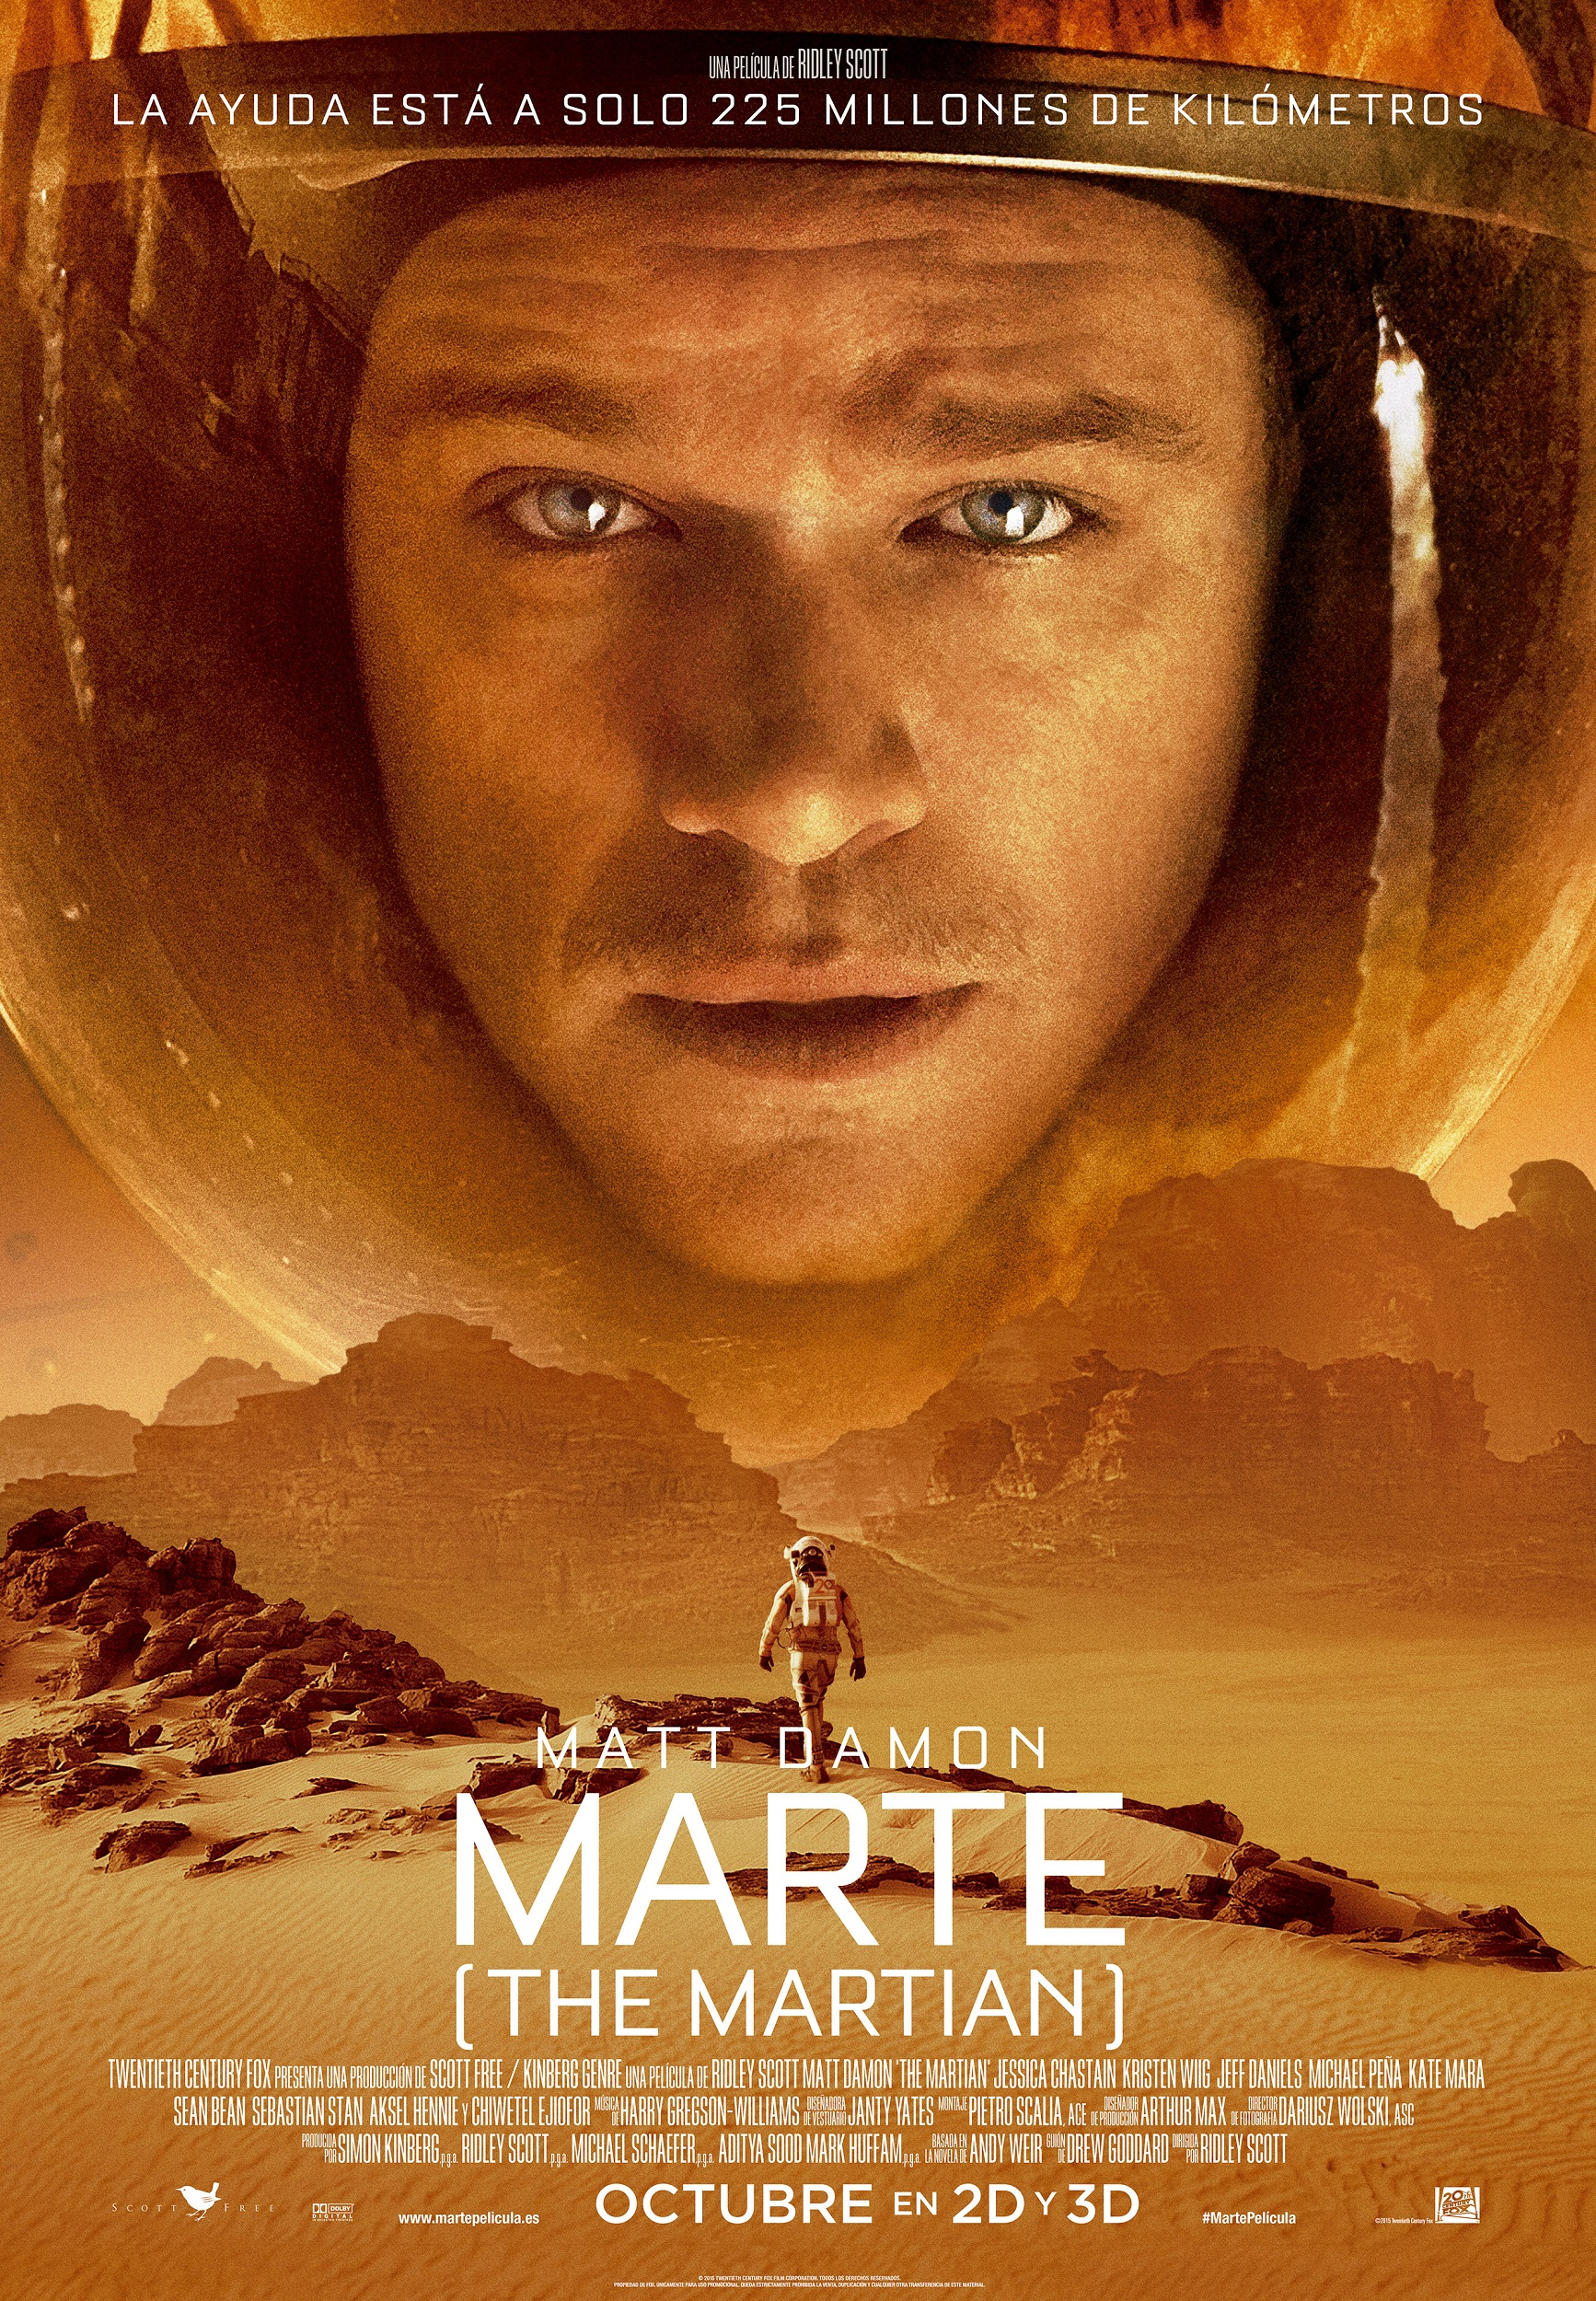 Marte The Martian Cartel